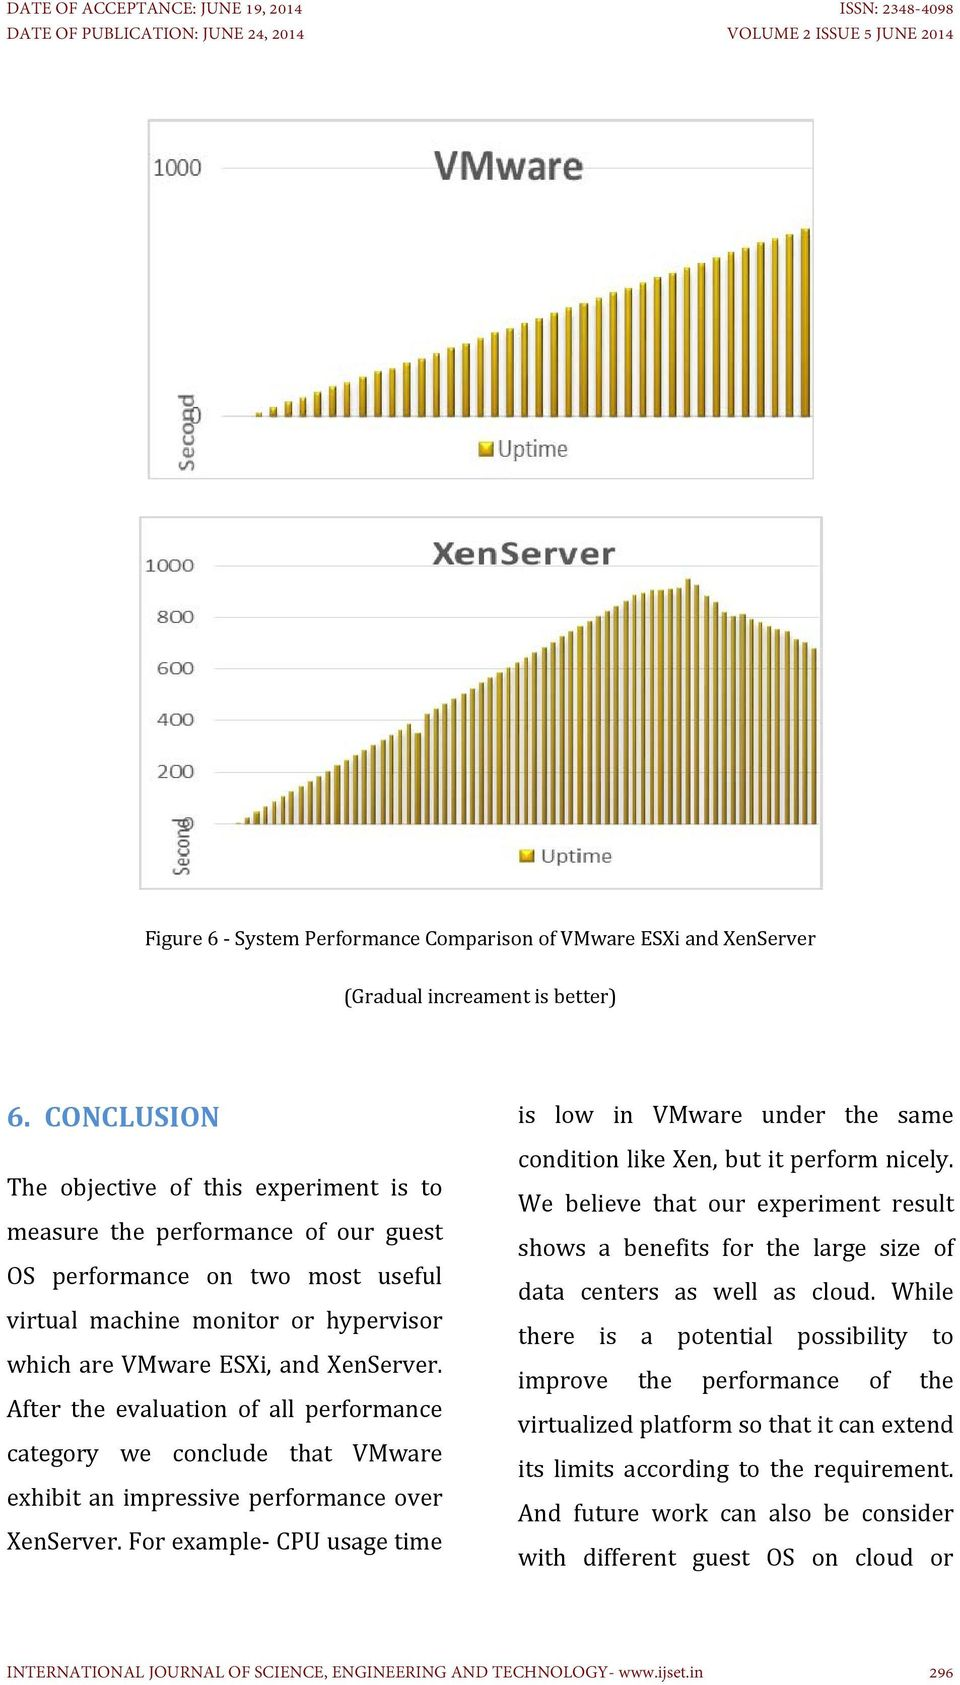 After the evaluation of all performance category we conclude that VMware exhibit an impressive performance over XenServer.